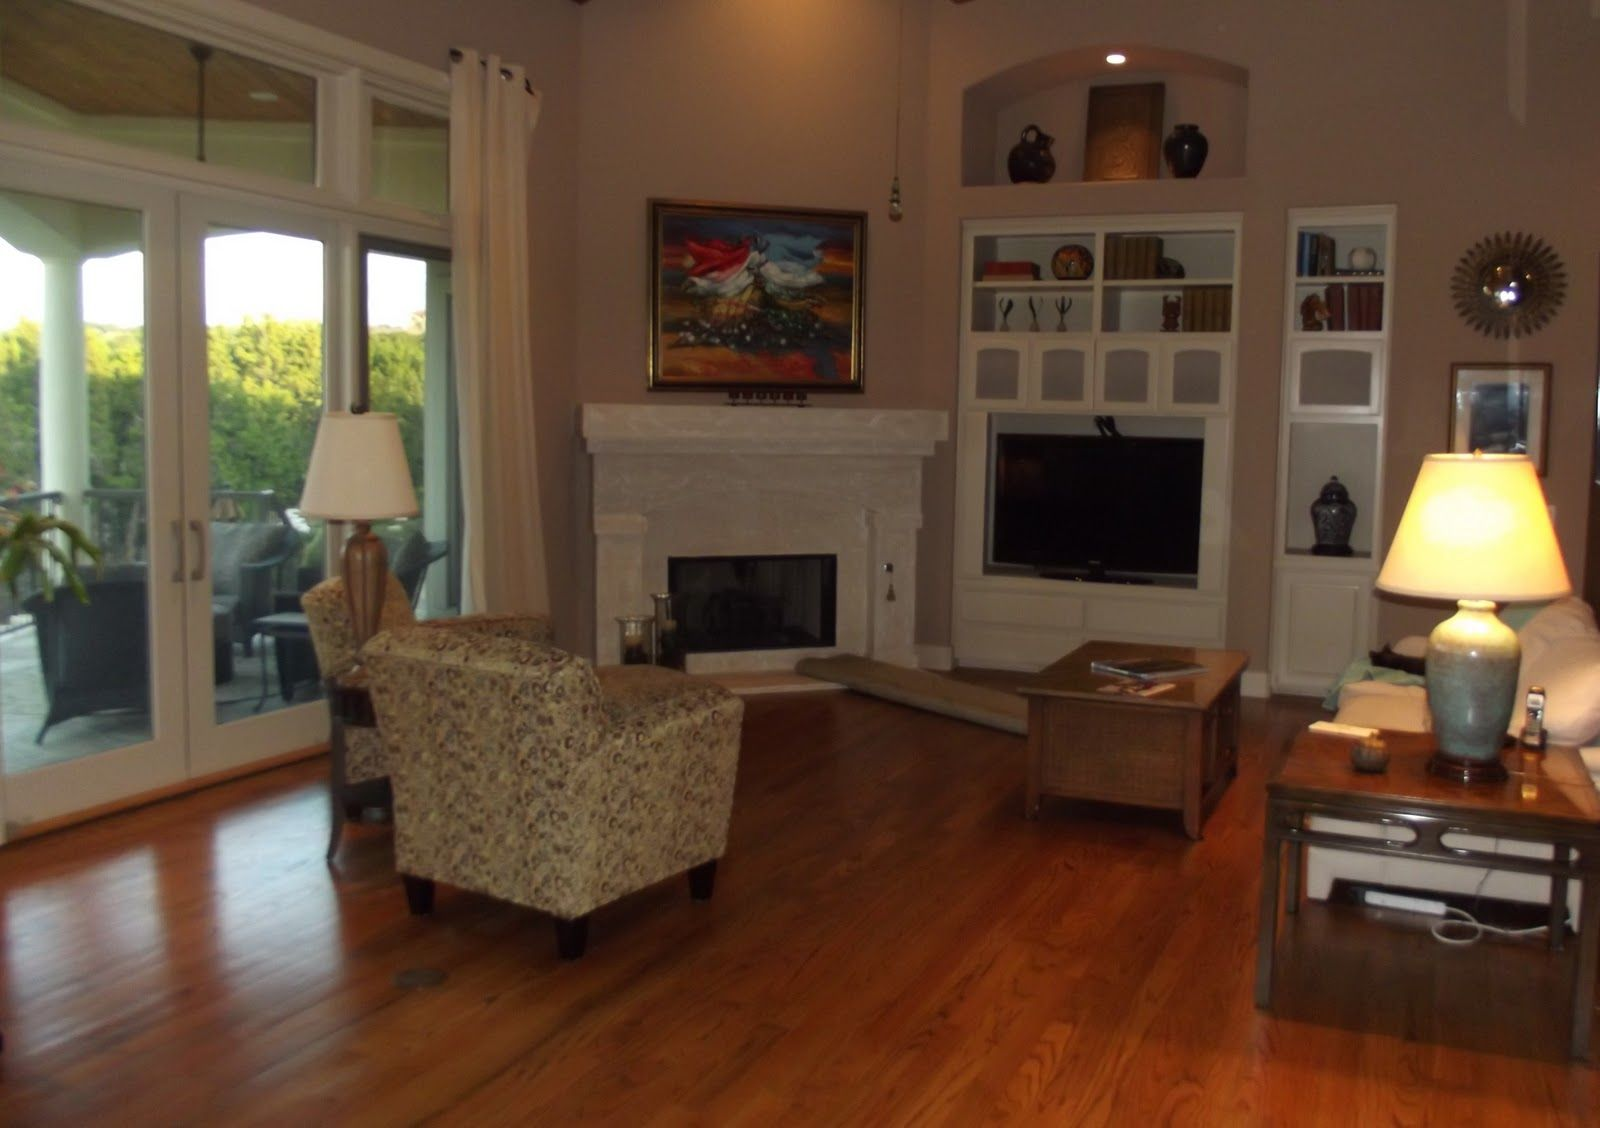 Furniture Placement In Living Room With Corner Fireplace ... on Small Space Small Living Room With Fireplace  id=84359